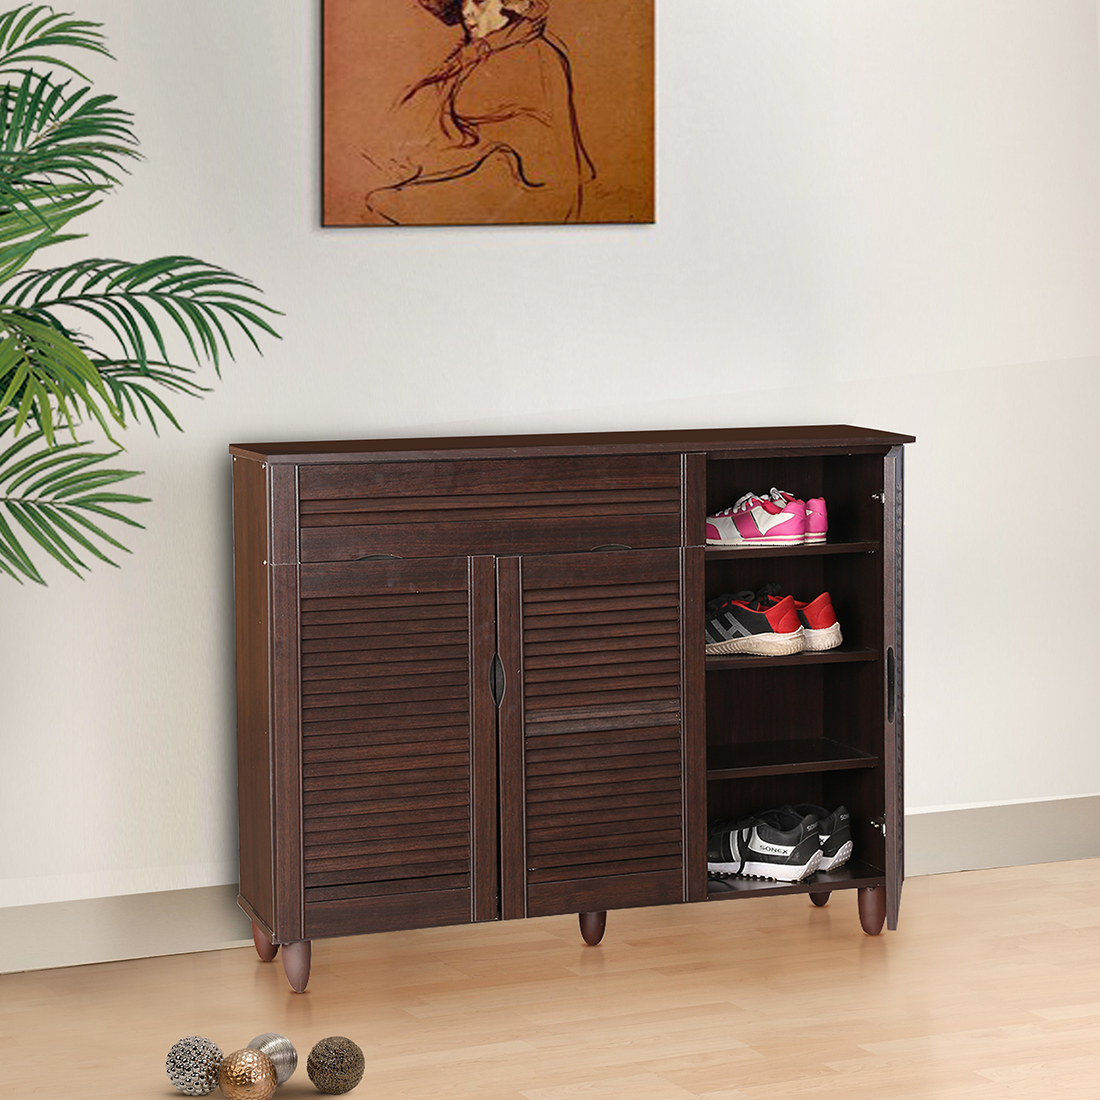 Carry Engineered Wood Shoe Rack in Wenge Colour by HomeTown